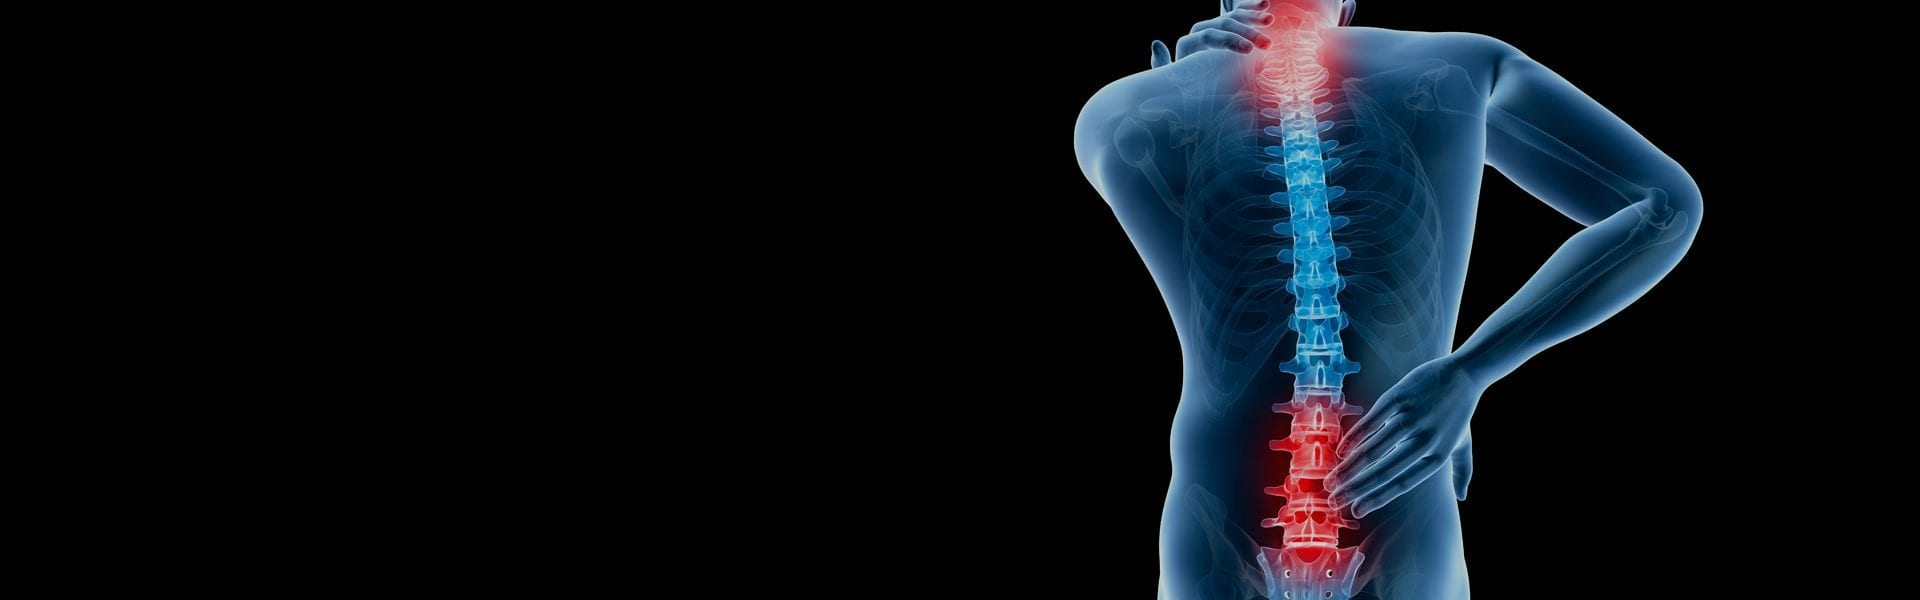 pain points - Back Pain and Neurosurgery Specialists in Fort Myers, FL